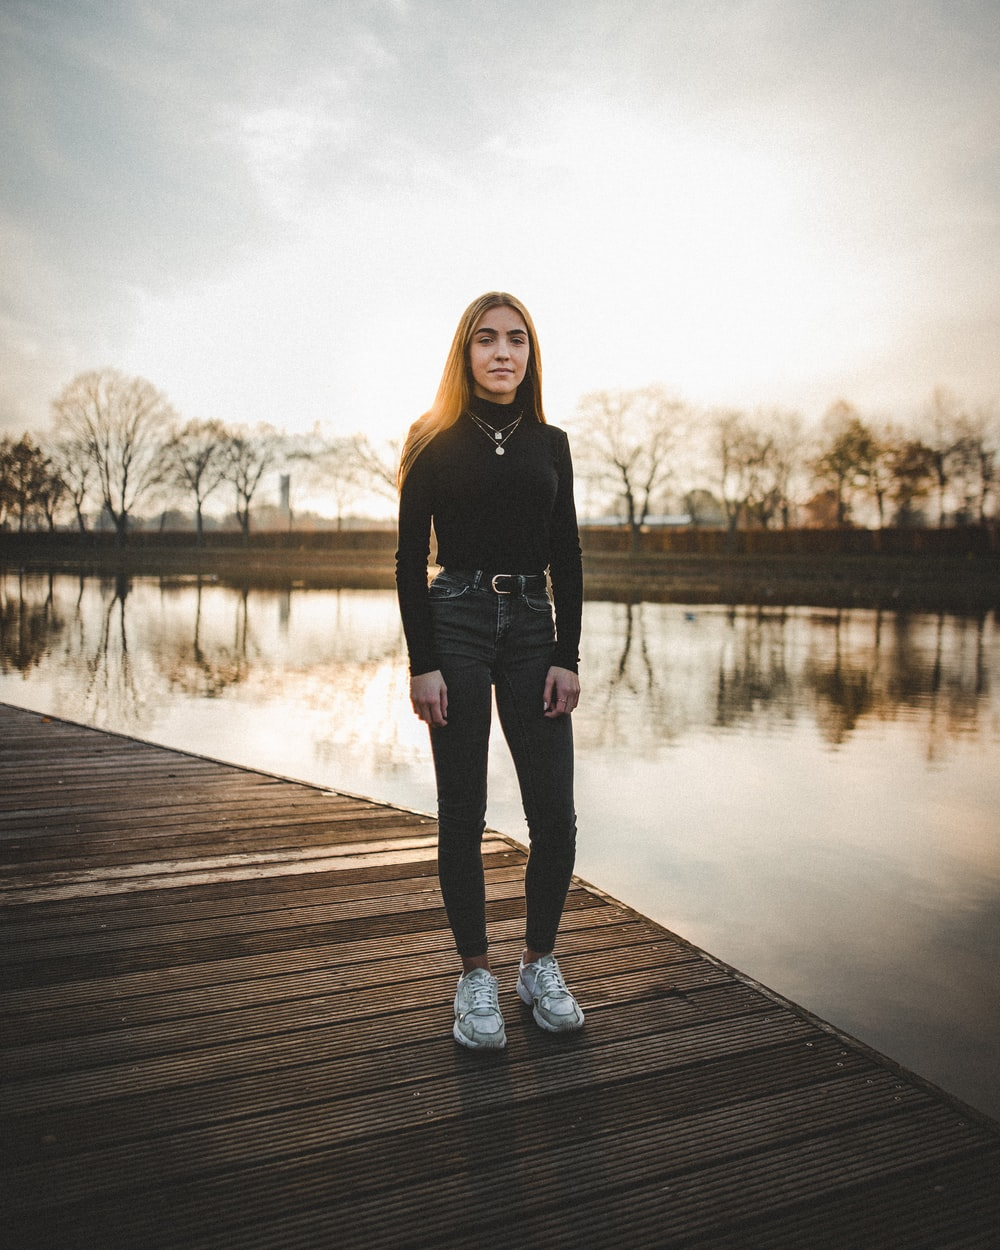 woman in black long-sleeved top and jeans standing on wooden dock during golden hour